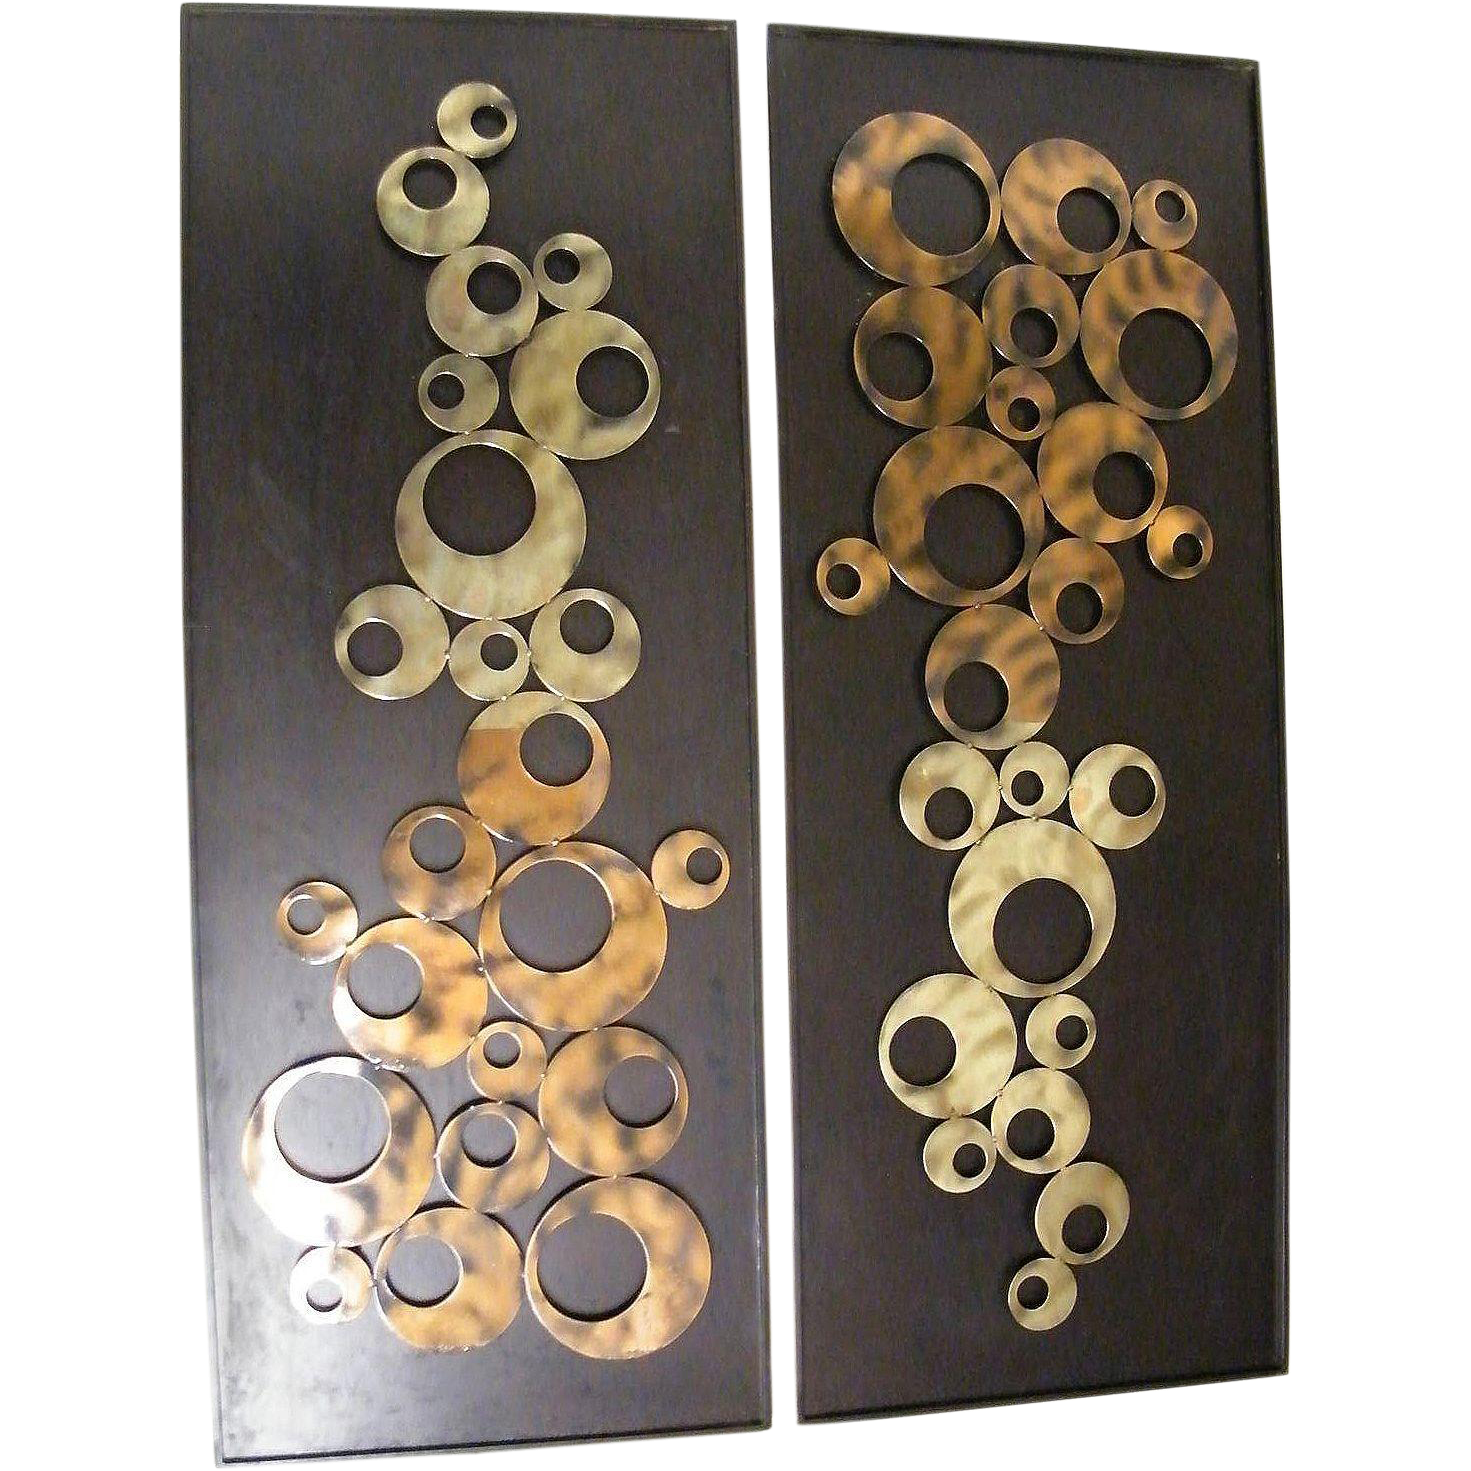 Mid Century Modern Metal Sculptures...2 Same Available